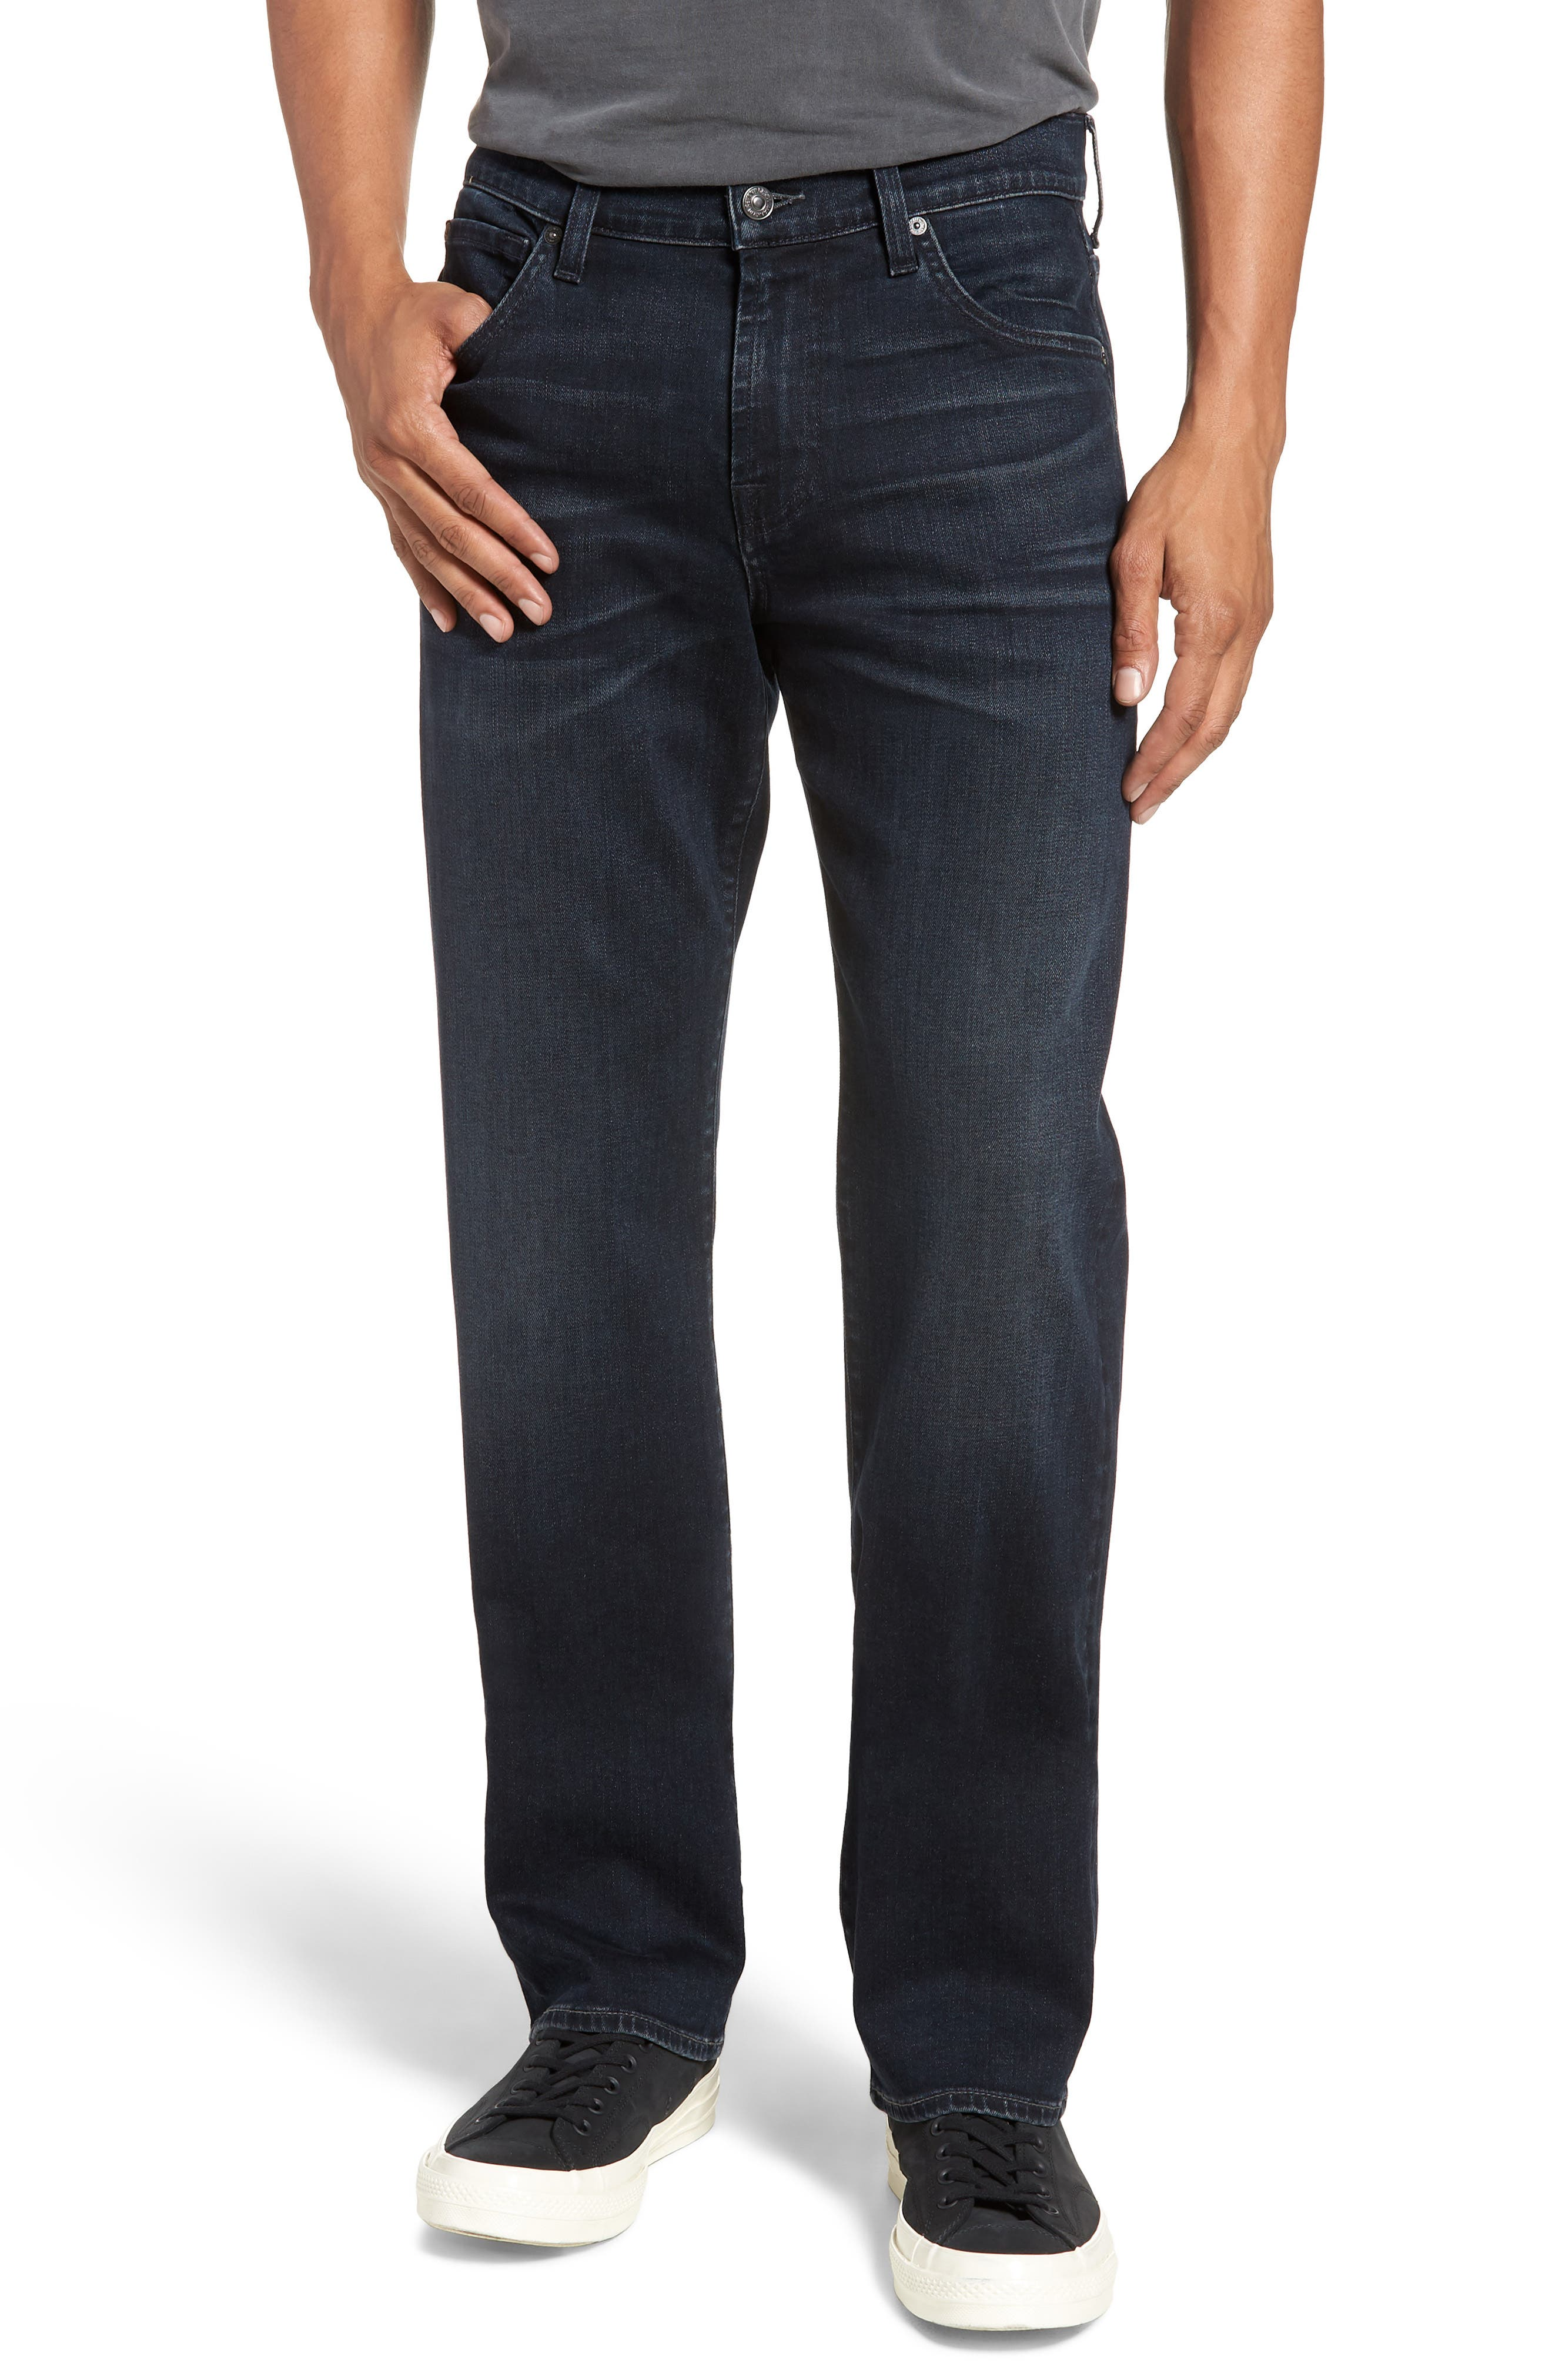 Austyn Relaxed Fit Jeans,                         Main,                         color, 400